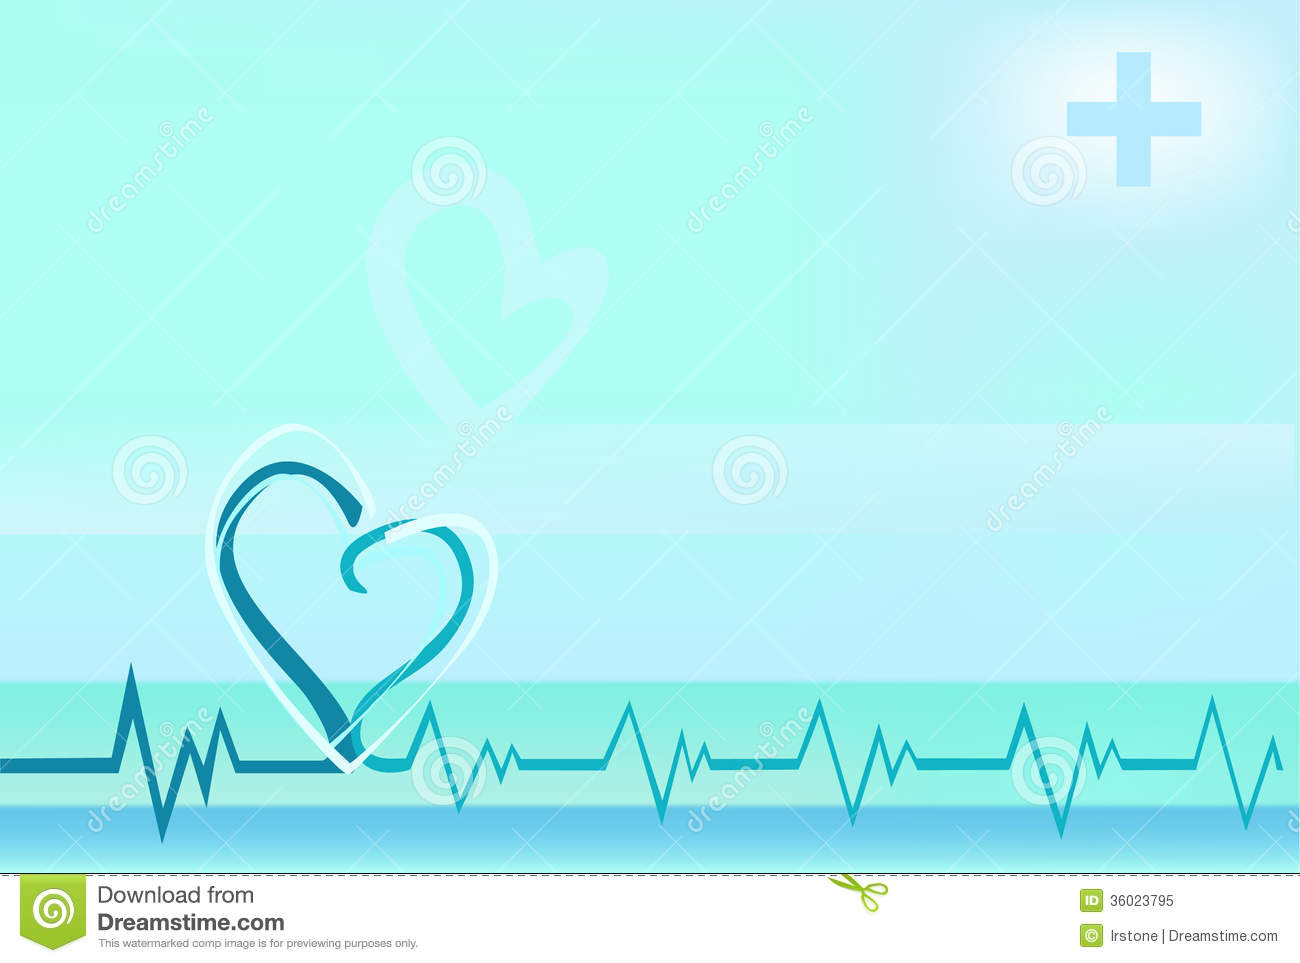 With heart beating line royalty free stock photo image 36023795